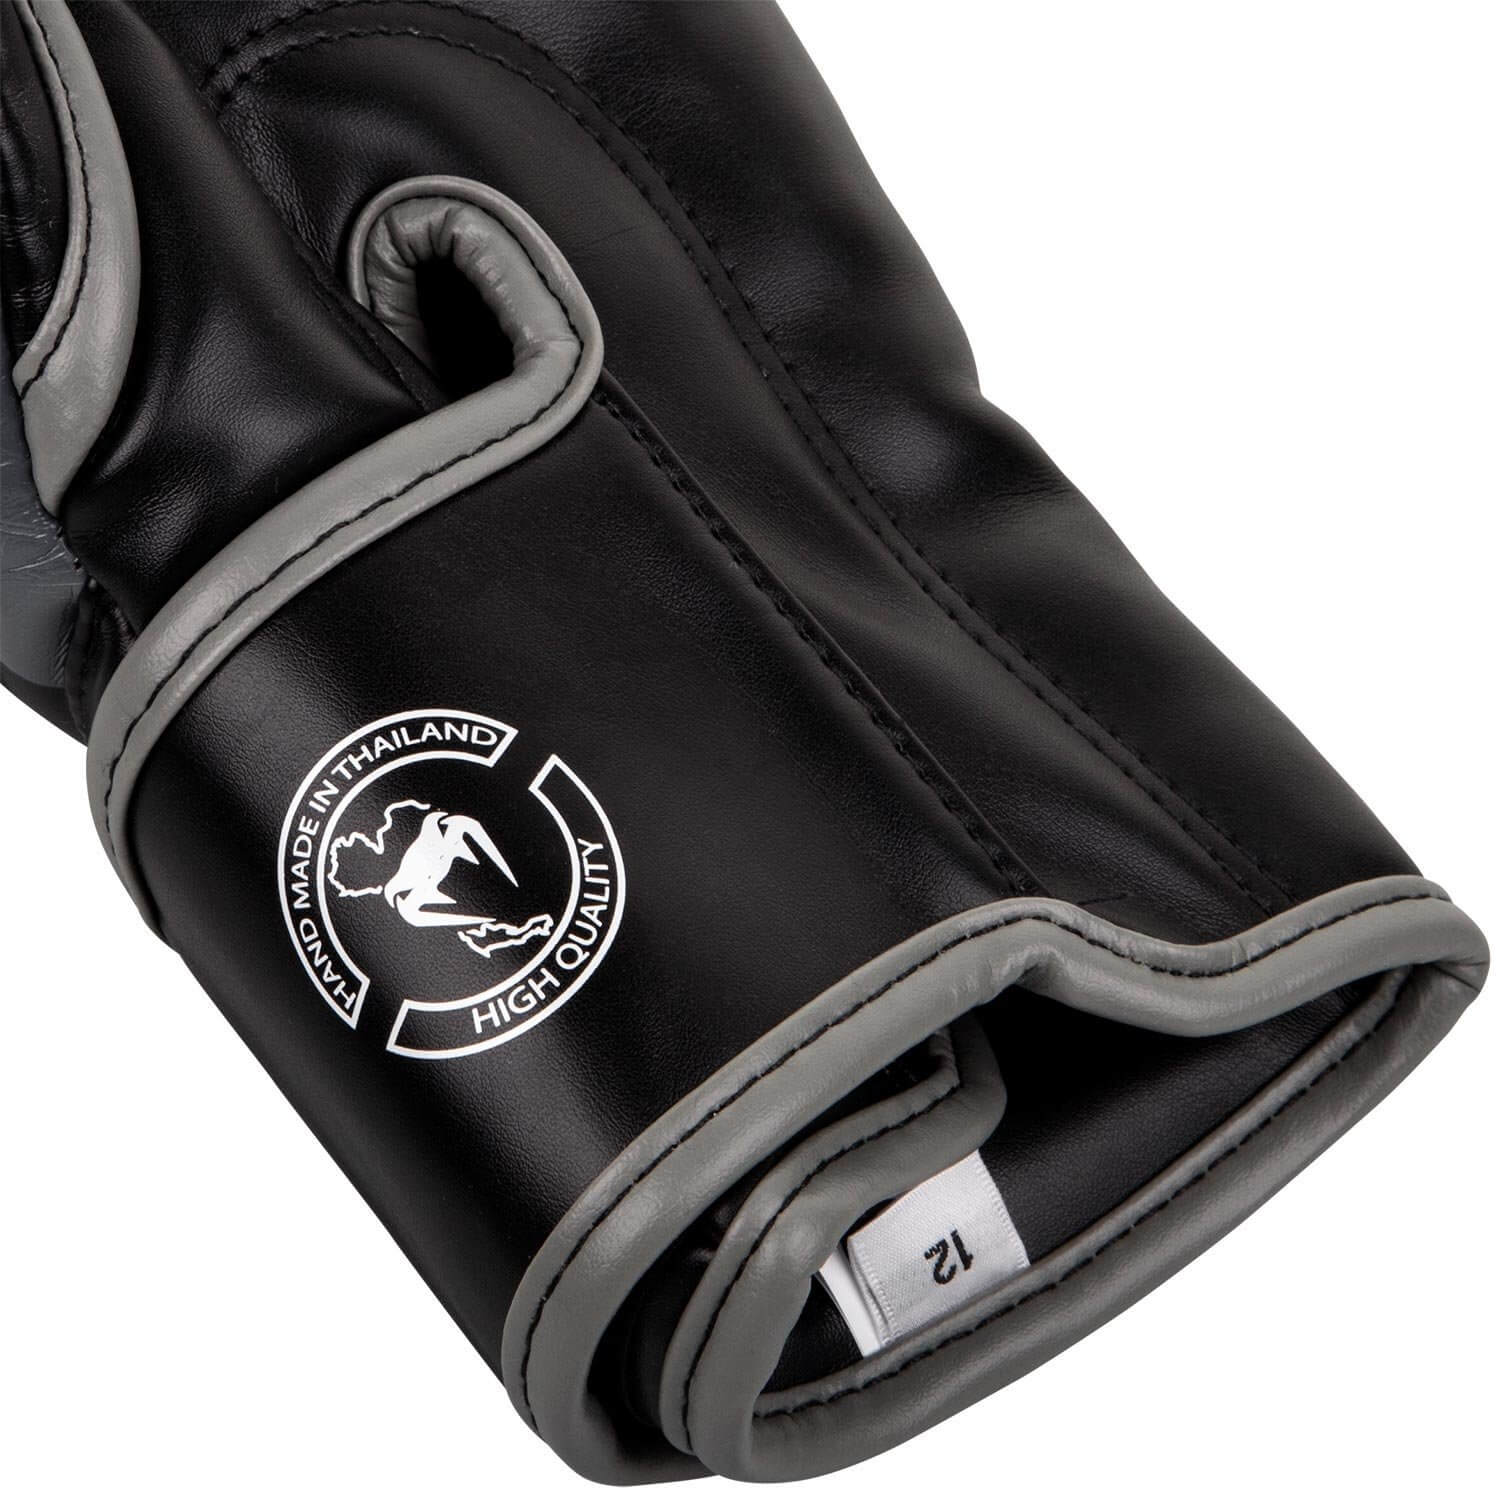 Venum Elite Boxing Gloves - Entry